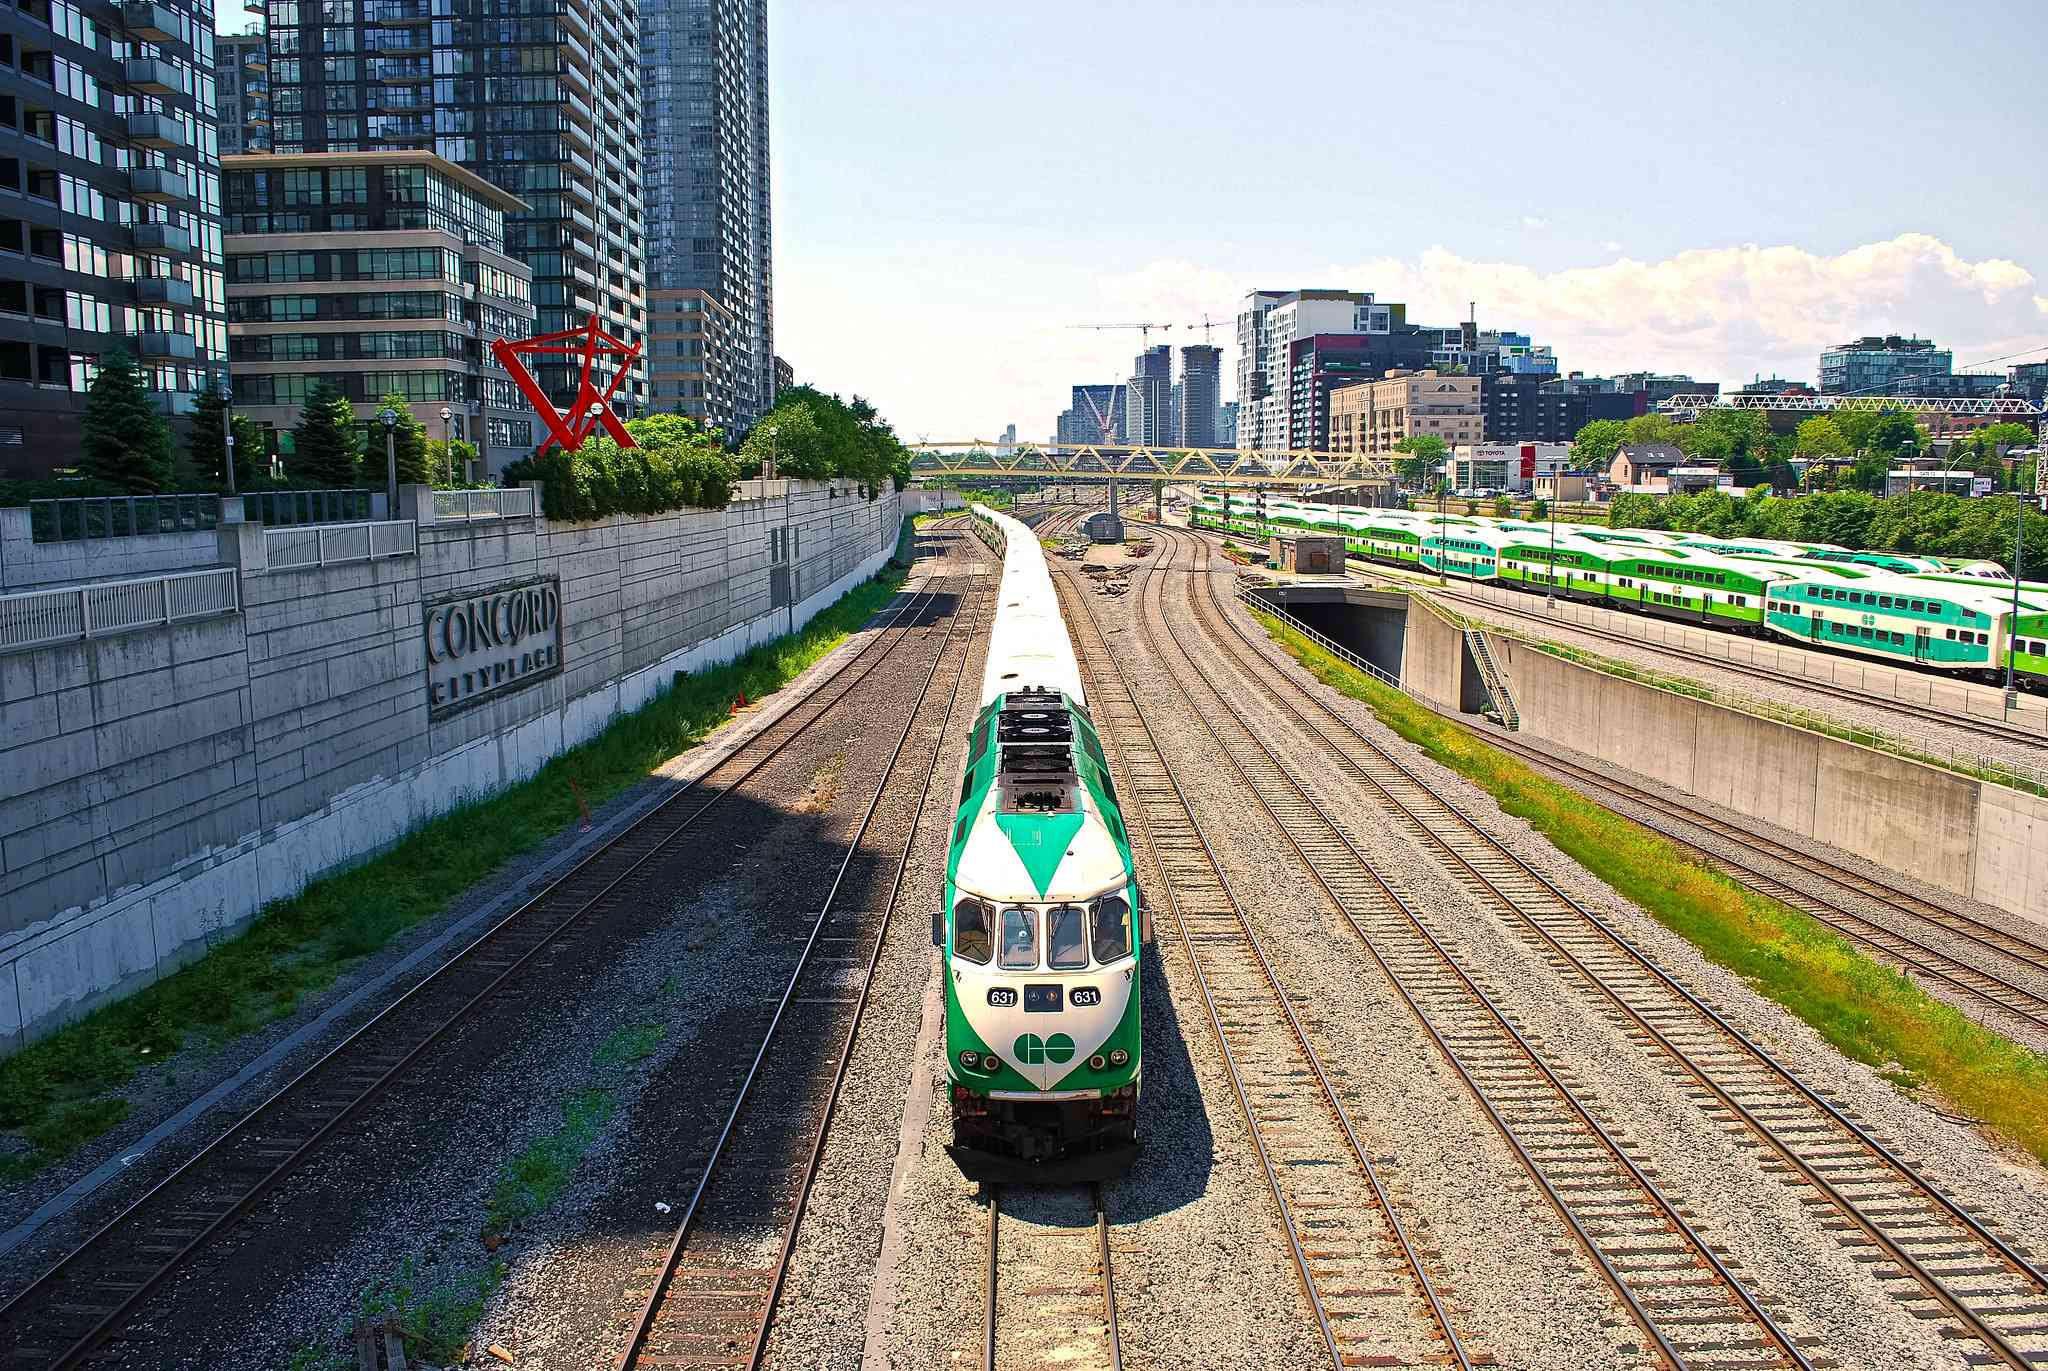 The GO Train approaching station